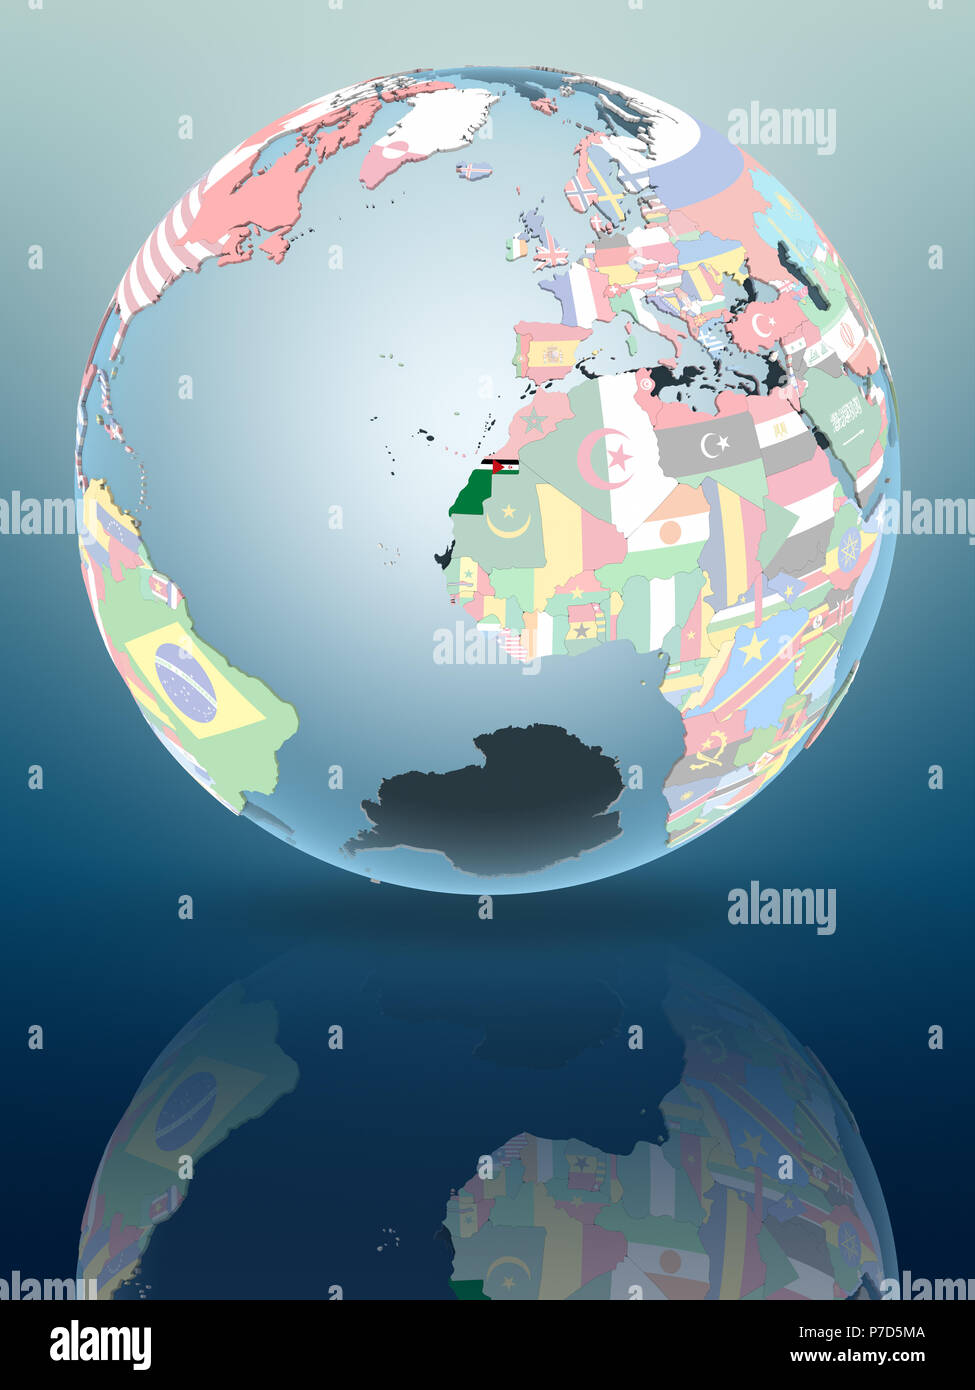 Western Sahara on political globe reflecting on shiny surface. 3D illustration. - Stock Image